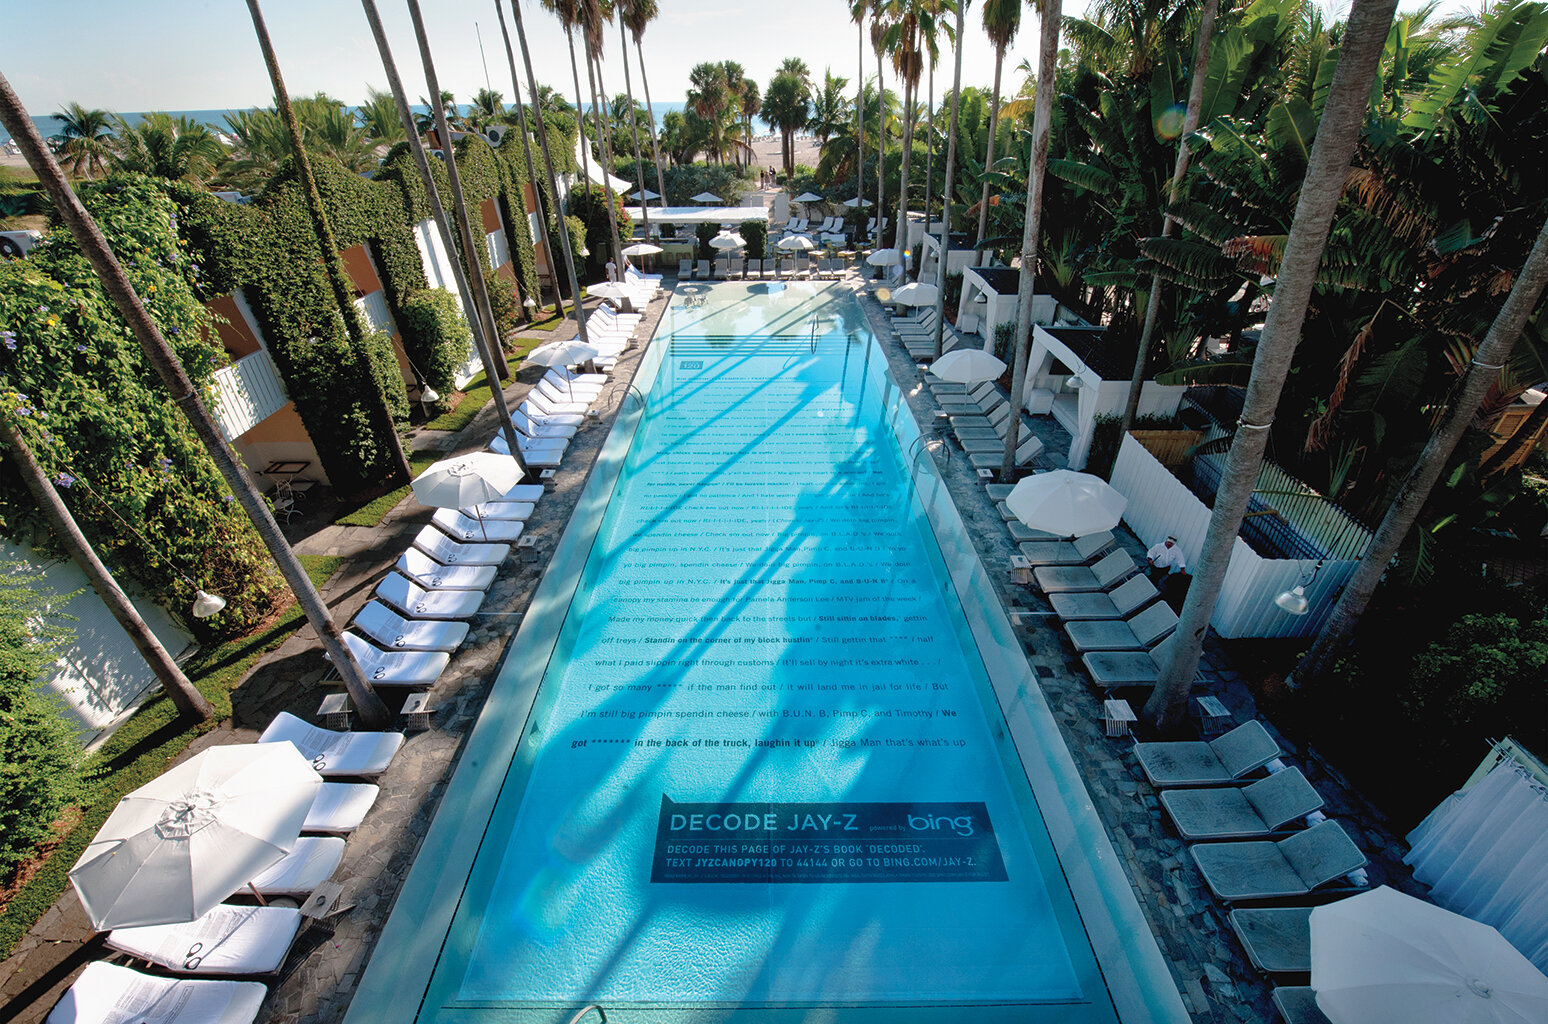 Droga5's David Droga will receive a Clio lifetime achievement award for works including Jay-Z's Decode Search Experience at Delano South Beach Hotel in Miami (pictured).